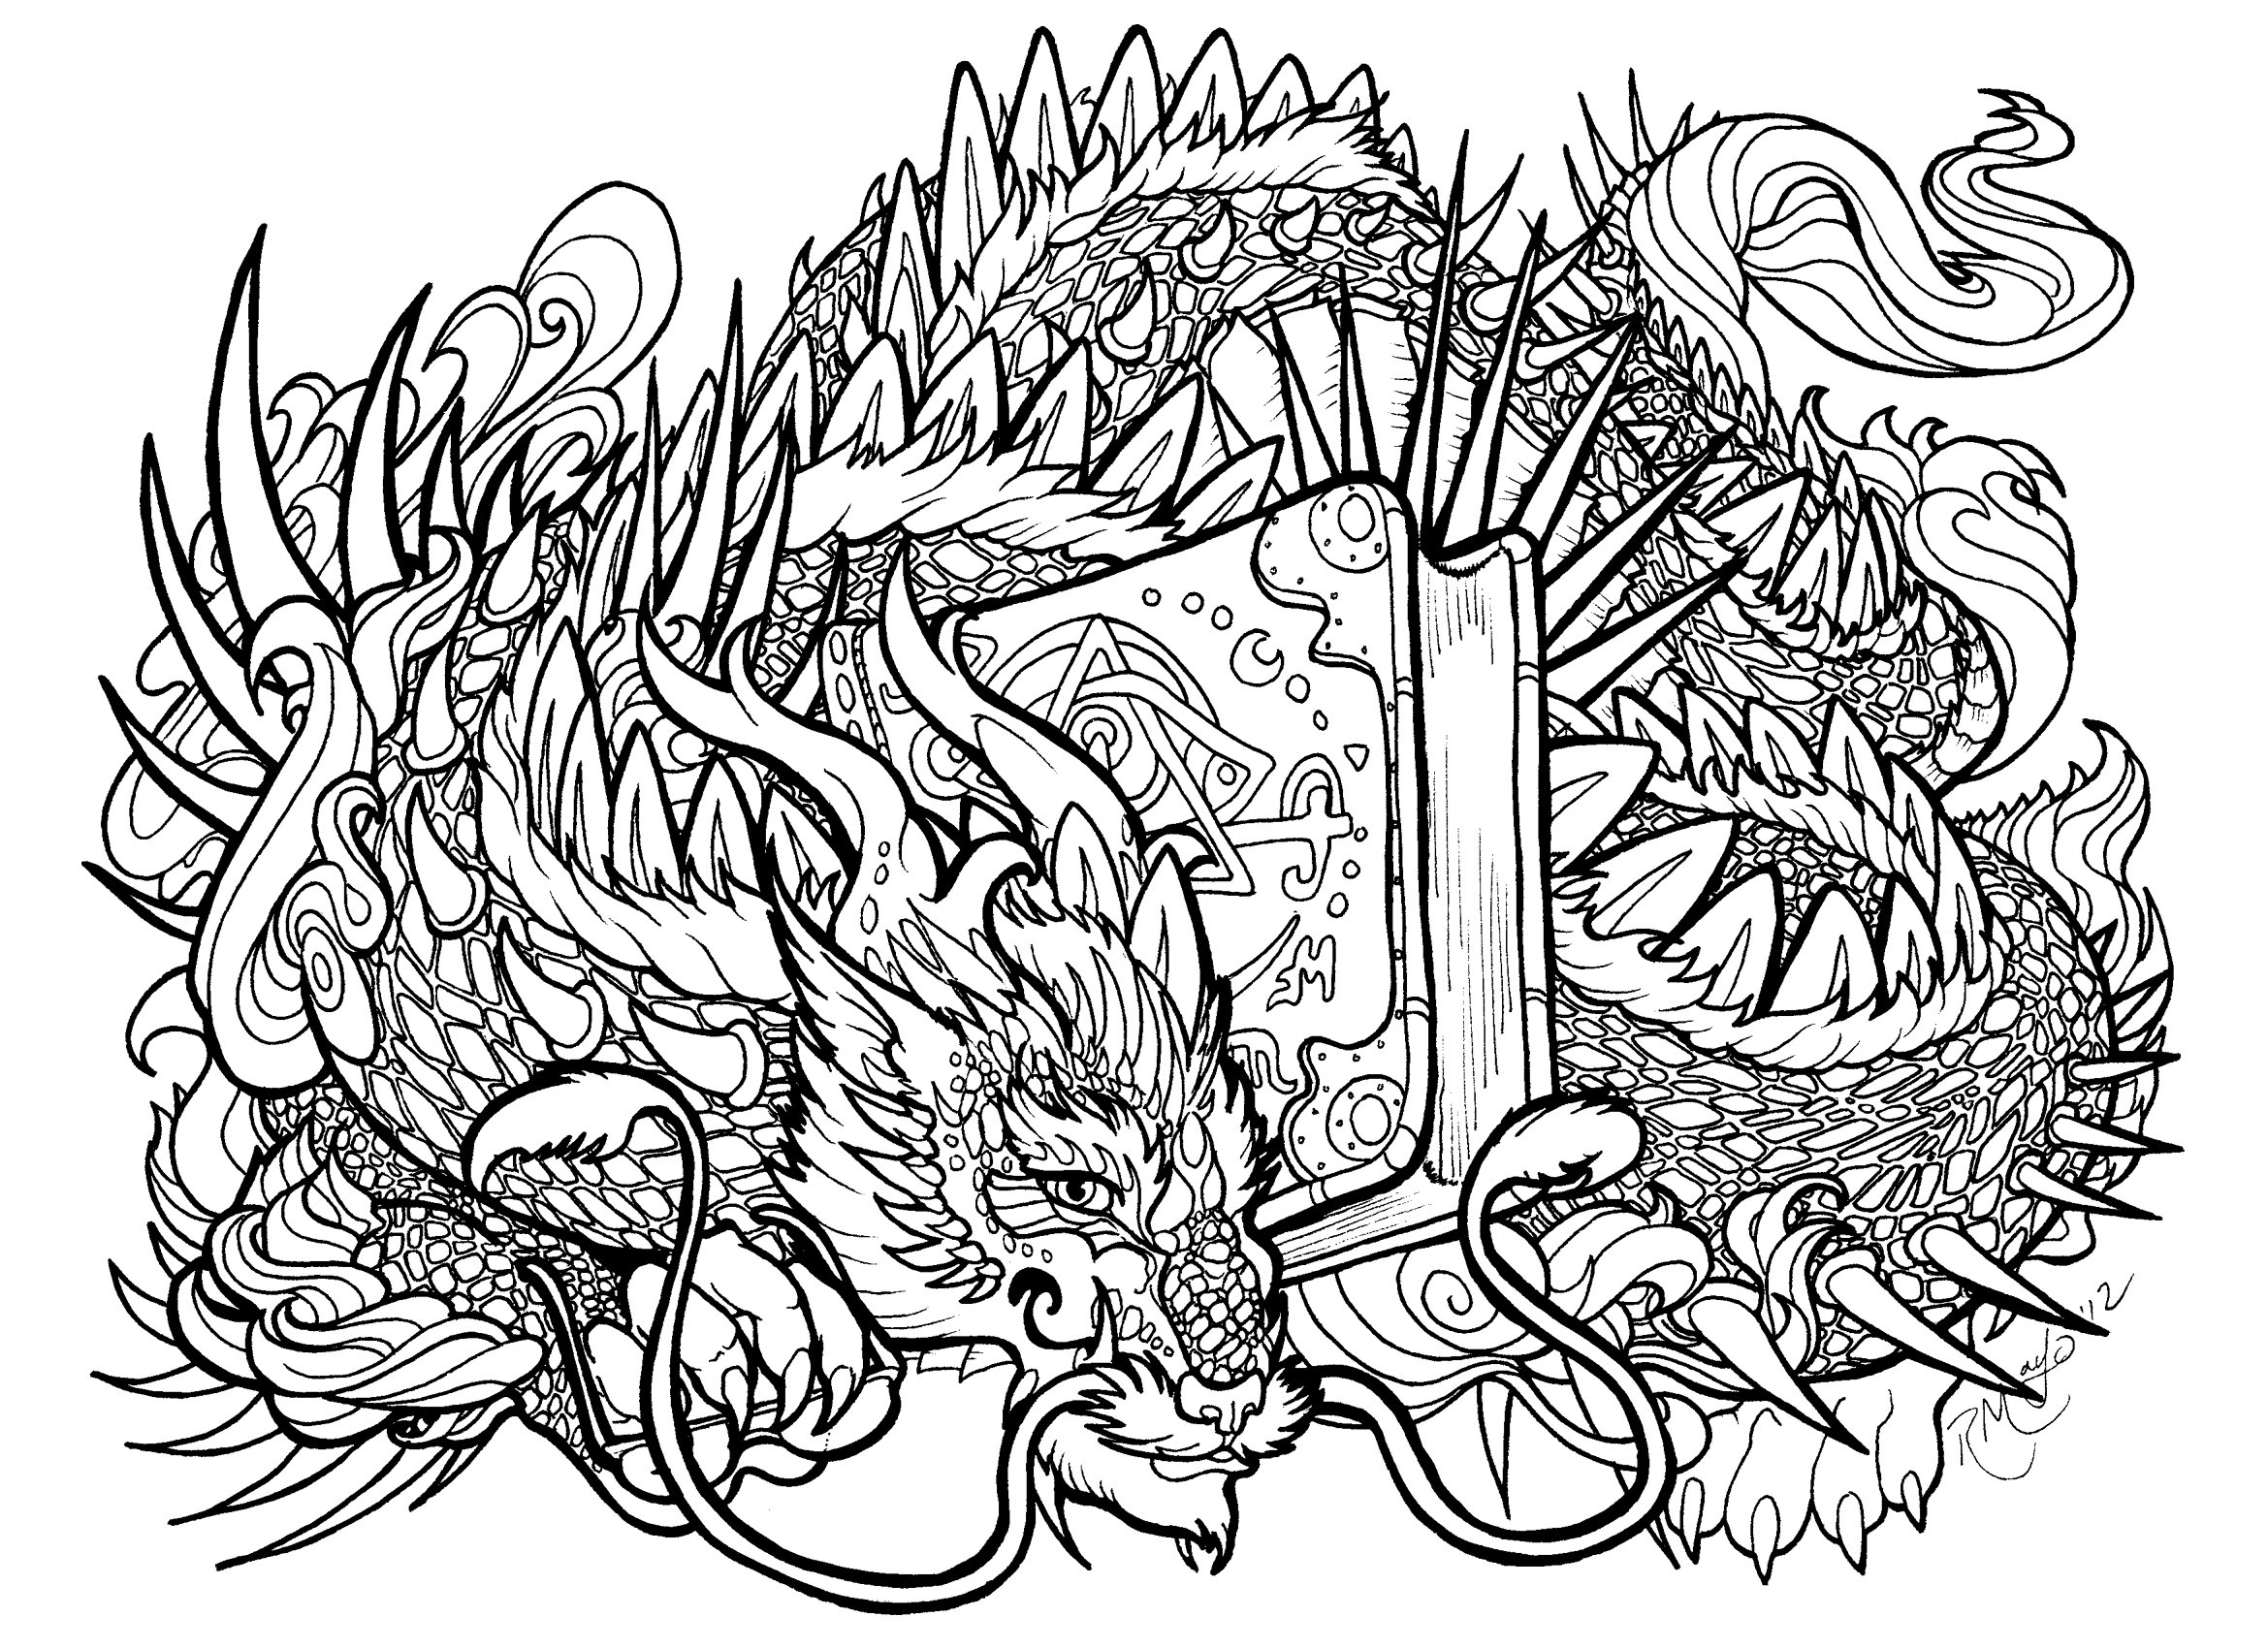 The Line Artwork : Bookwyrm lineart by rachaelm on deviantart